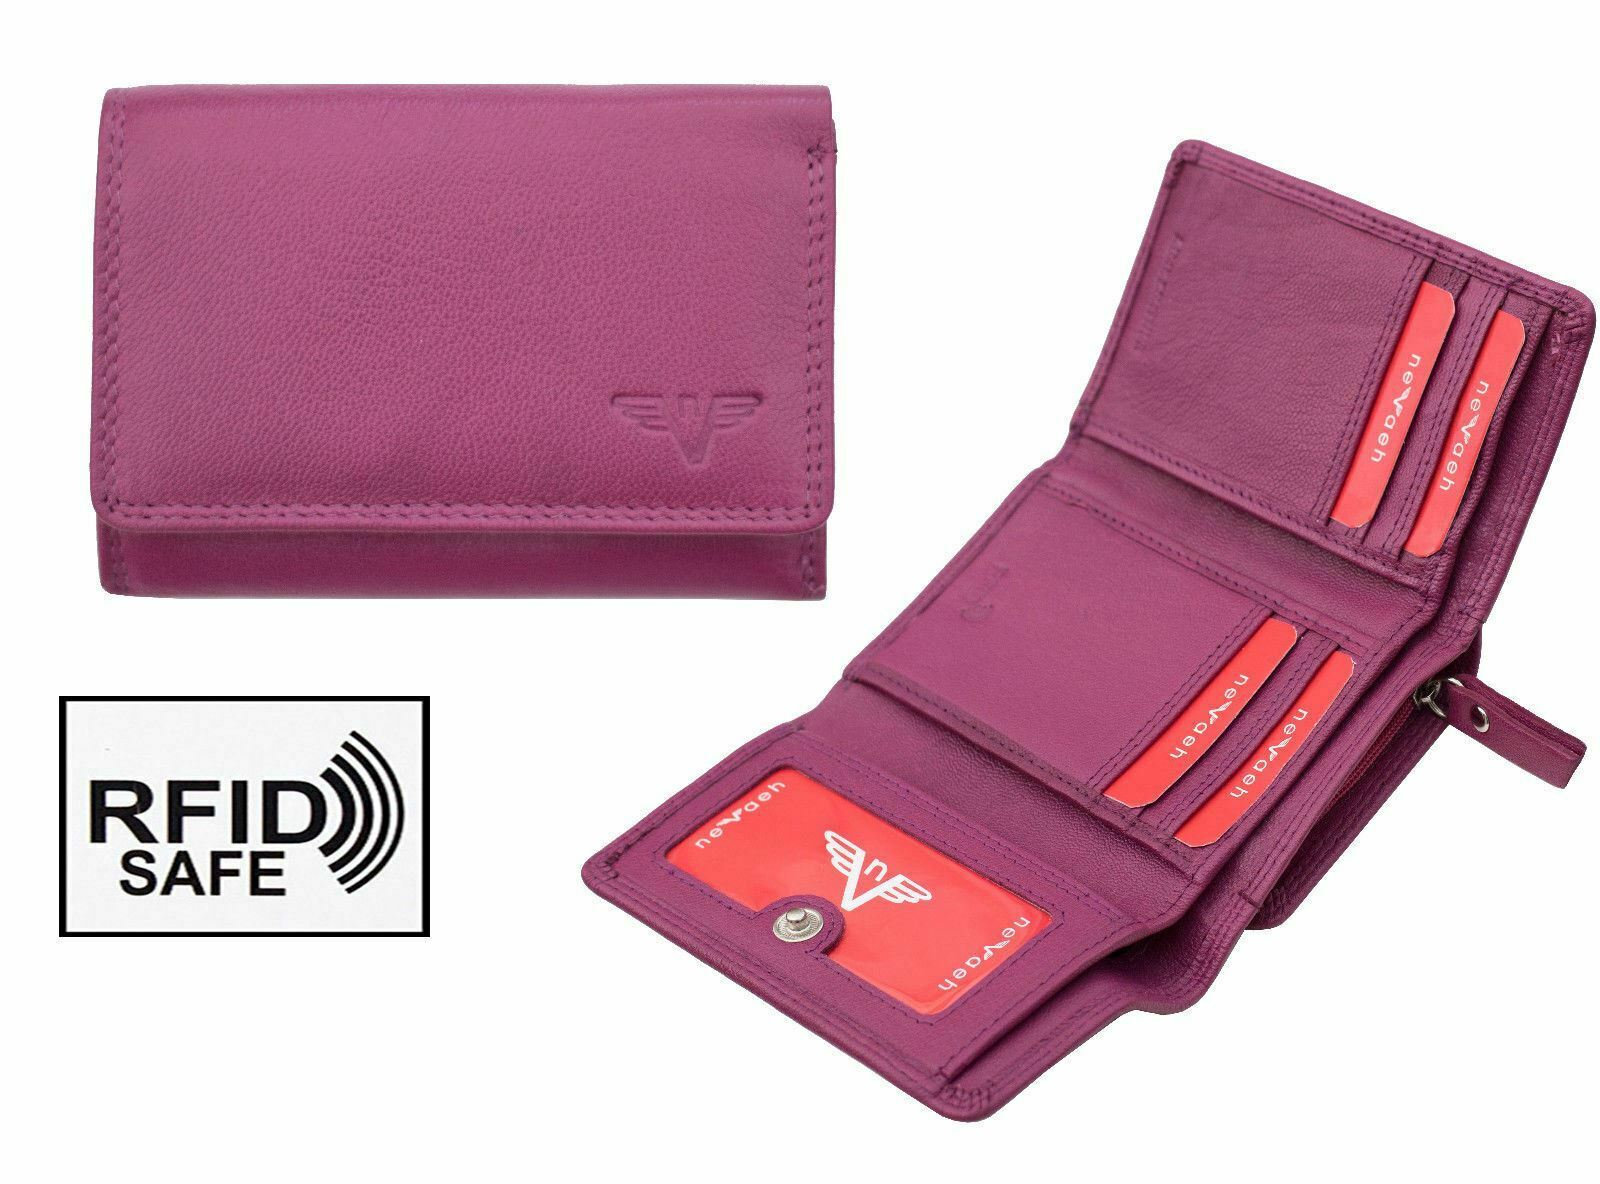 Nevaeh Heavenly Accessories Ladies Small Fuchsia Leather Trifold Purse RFID SAFE